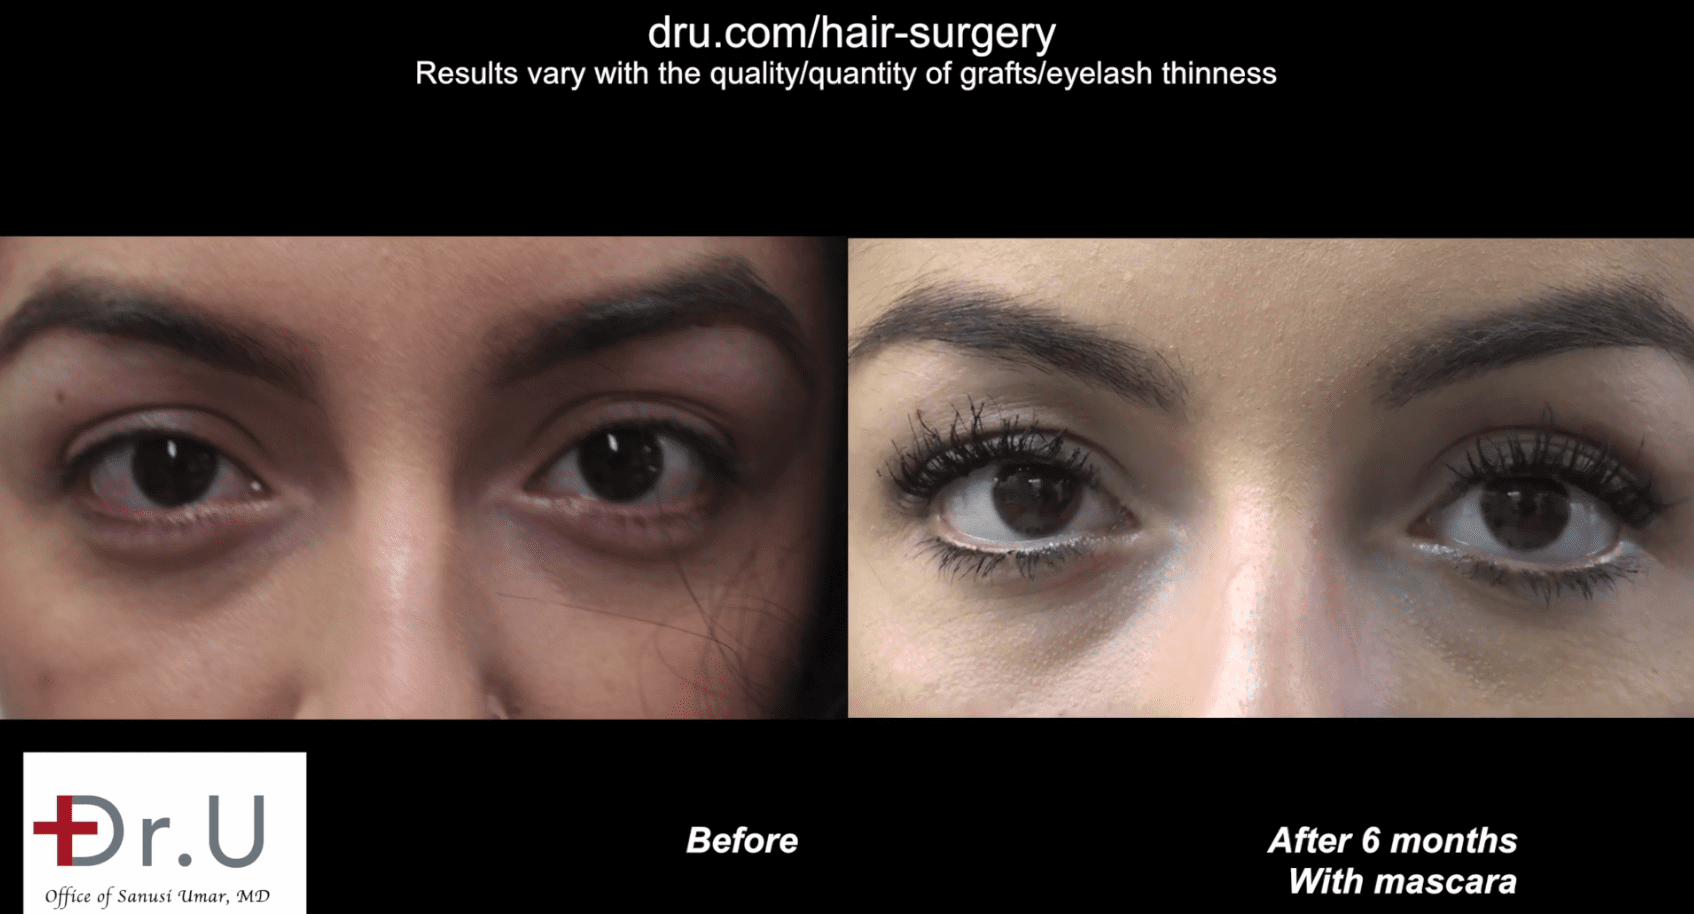 The patient is able to curl and style her eyelashes 6 months after her eyelash hair transplantation.